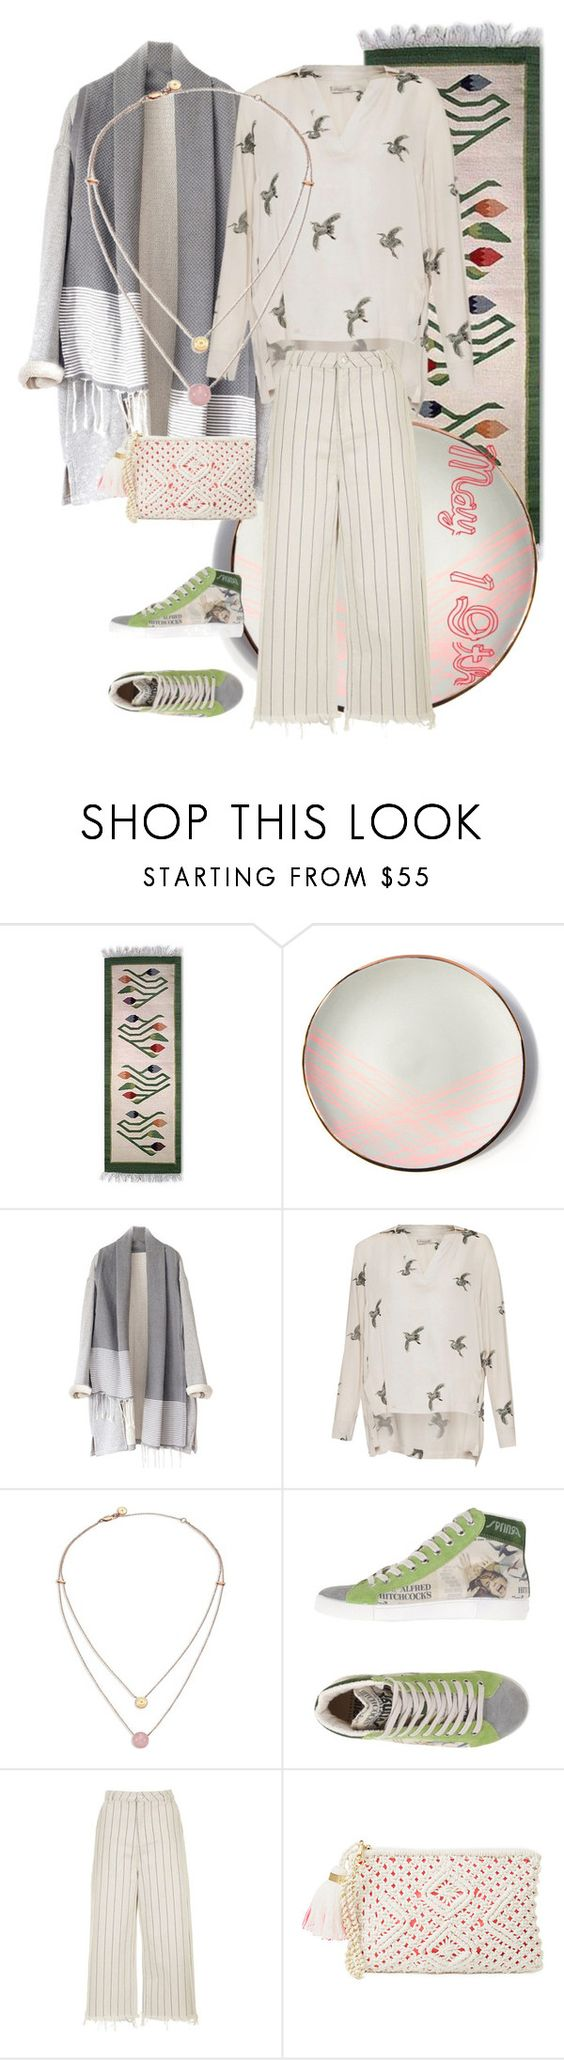 """""""OOTD"""" by yesitsme123 ❤ liked on Polyvore featuring NOVICA, Sarah Cihat, Great Plains, Michael Kors, Springa, Topshop and Lilly Pulitzer"""